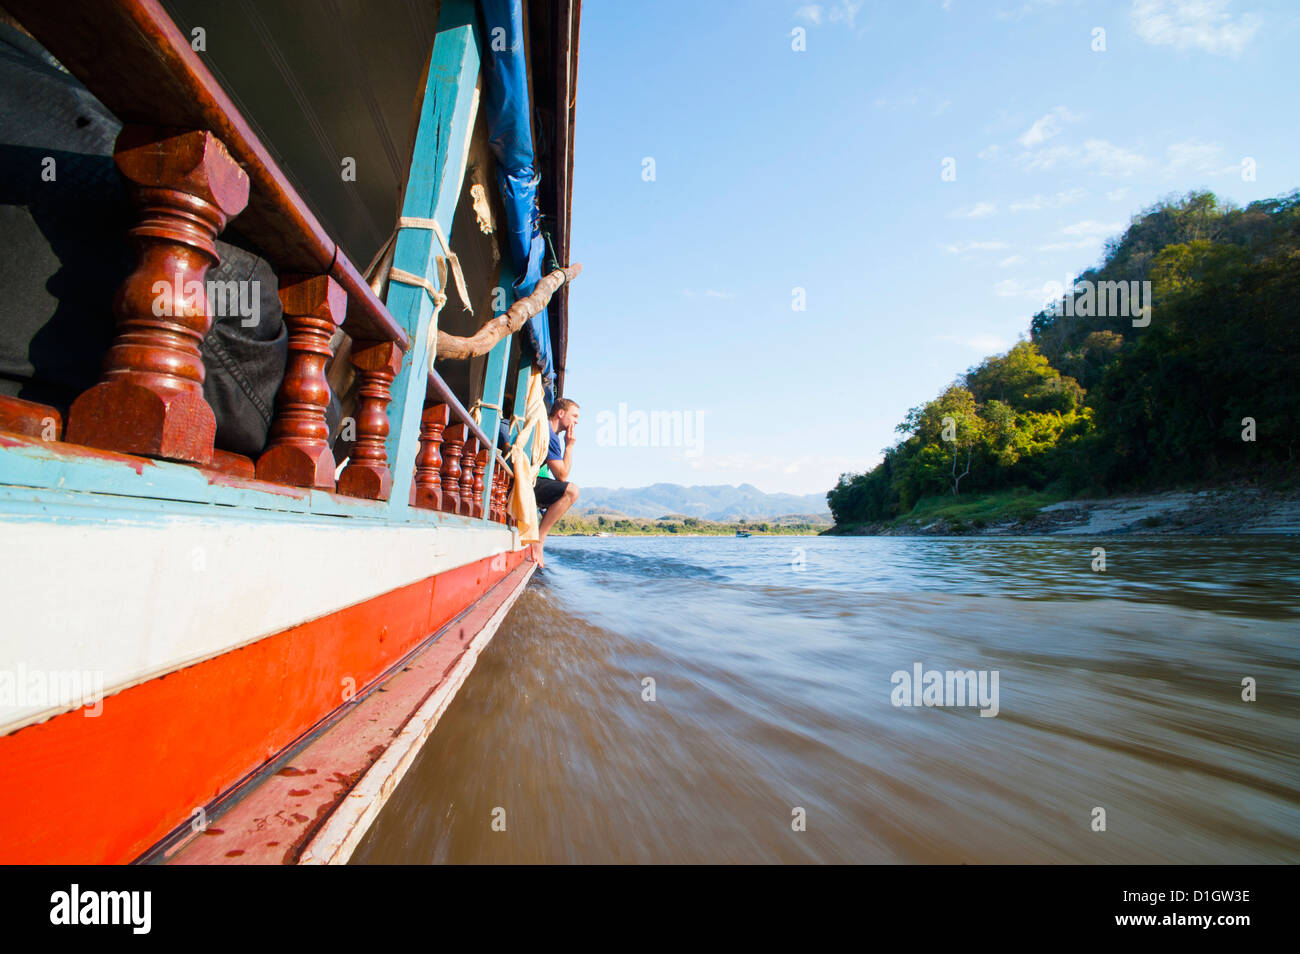 Tourist on the side of the slow boat from Thailand to Vientiane, Laos, Indochina, Southeast Asia, Asia - Stock Image